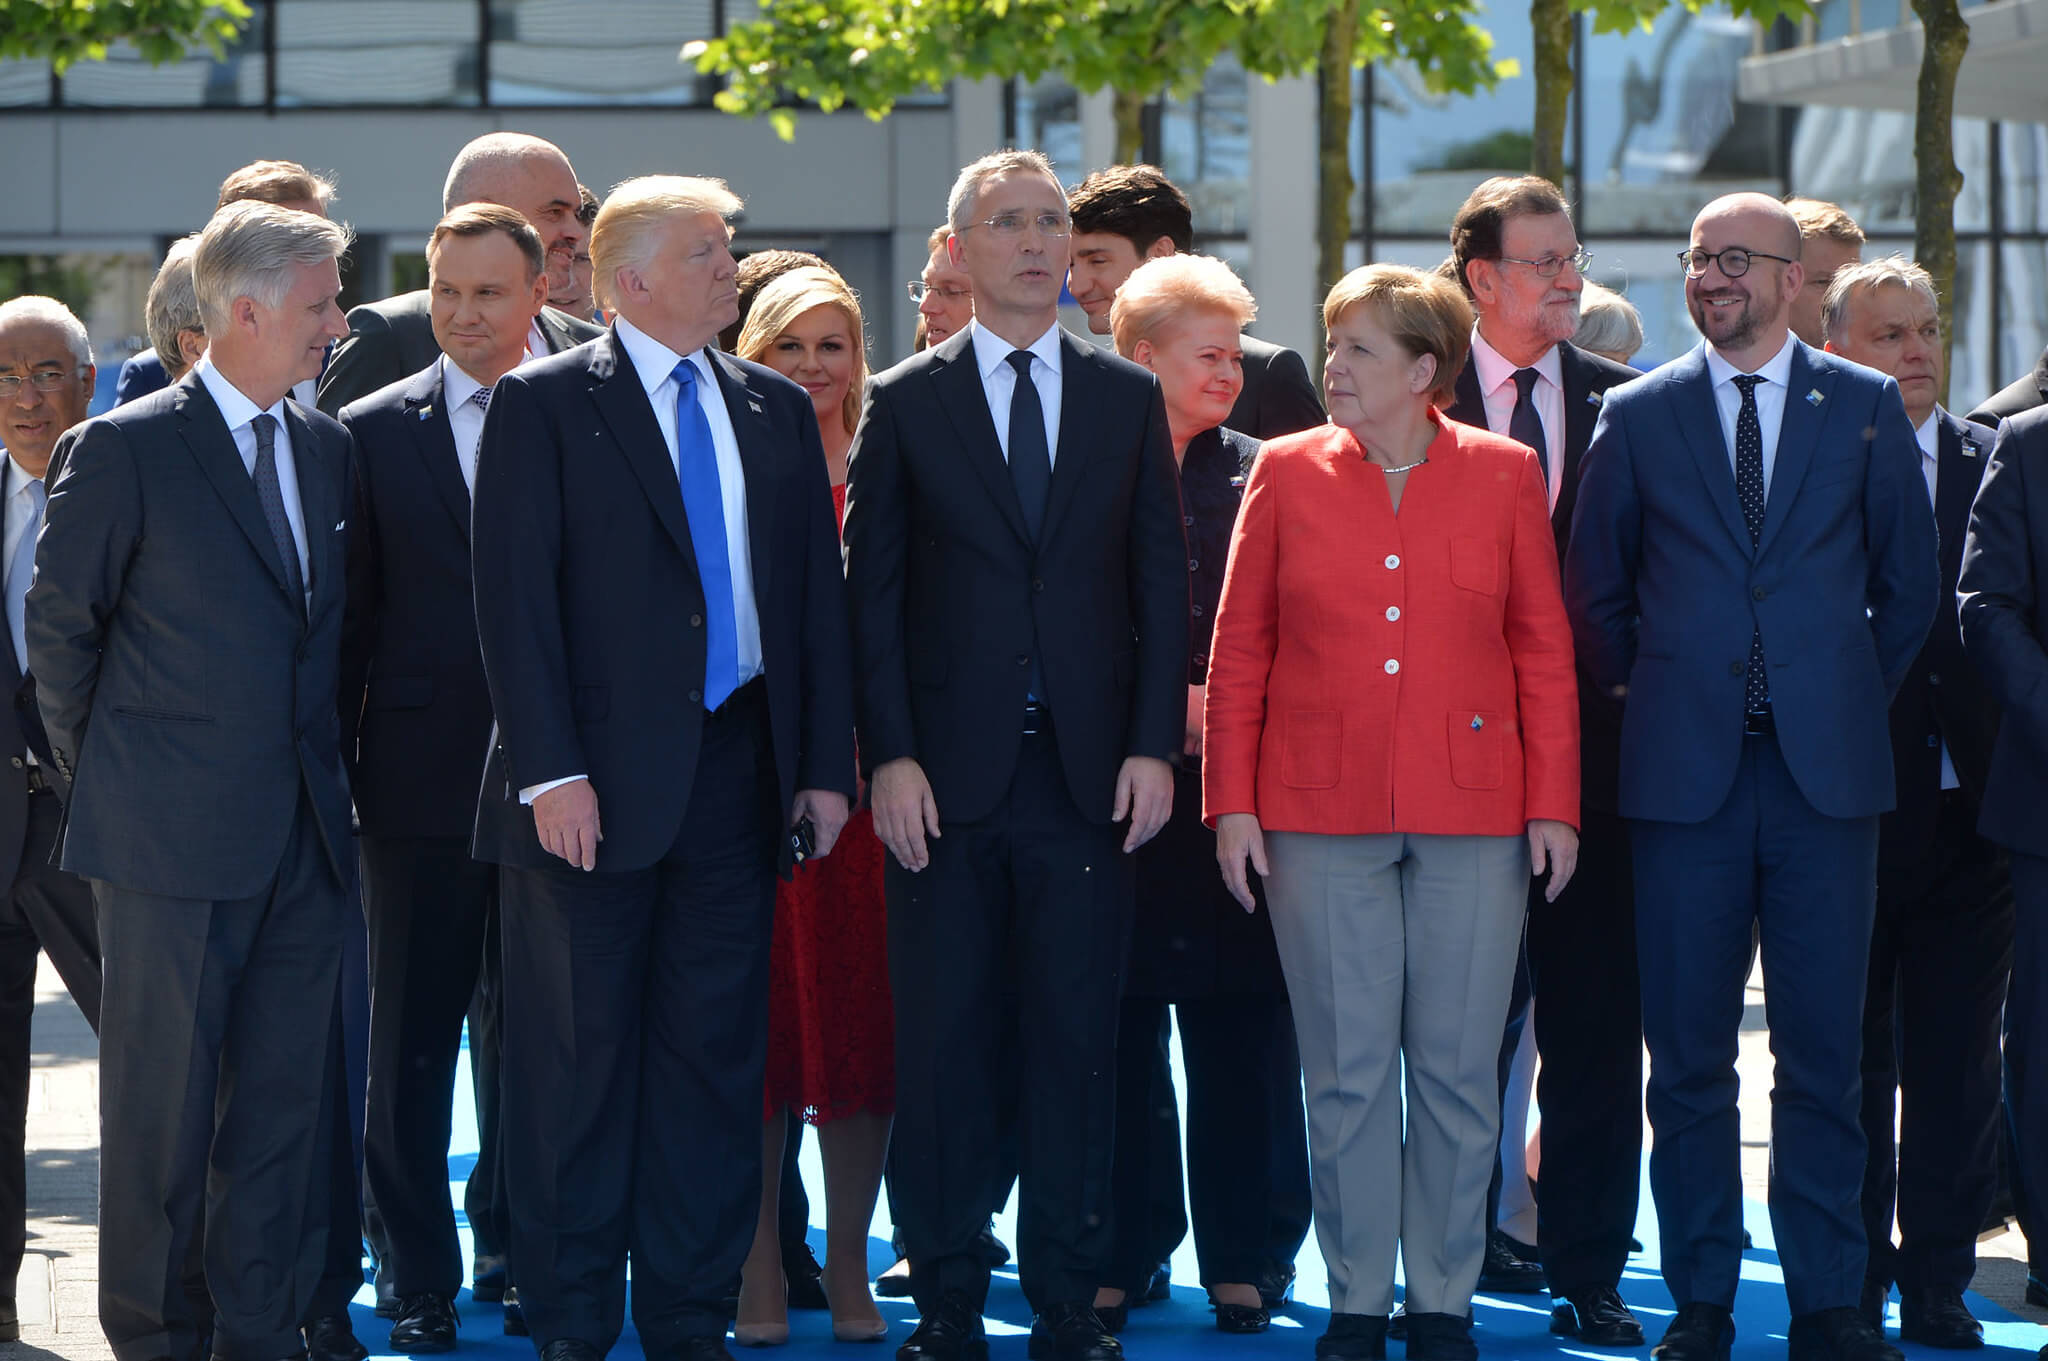 Frohlich-Belgian king Philippe, President Donald Trump, NATO Secretary General Jens Stoltenberg, Chancellor Angela Merkel and Belgian Prime Minister Charles Michel at a NATO meeting in May 2017. NATO